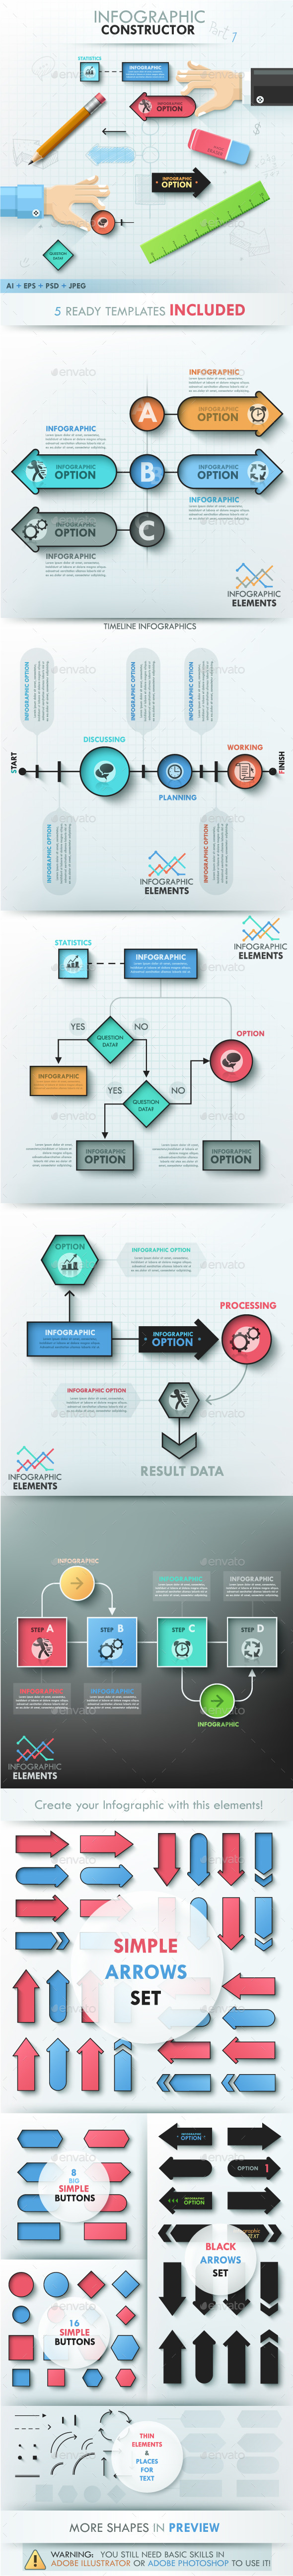 GraphicRiver Infographic Constructor Set 1 10171354